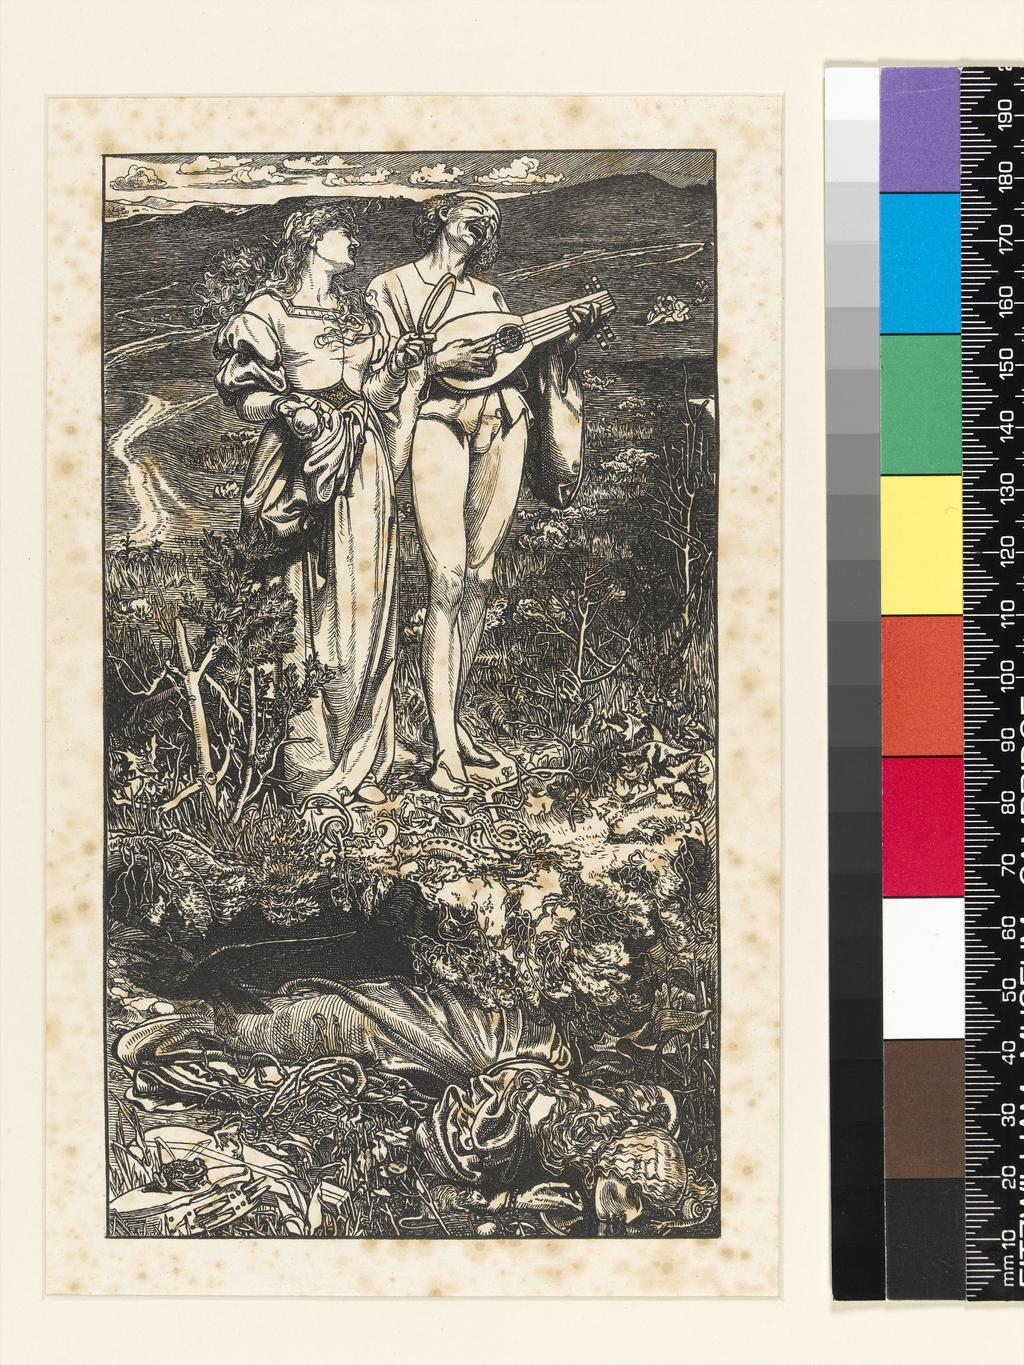 """An image of Title/s: Amor Mundi Maker/s: Sandys, Frederick (draughtsman) British artist, 1829-1904Dalziel family (printmaker) British engravers, 19th c.Production Notes : Proof. Illustration to Christina Rossetti's poem in the """"Shilling Magazine"""", 1865Technique/s: wood engravingMaterial/s : black carbon ink (Medium), paper (Support) Dimensions: image height: 175 mm, image width: 99 mm Date: circa 1865"""